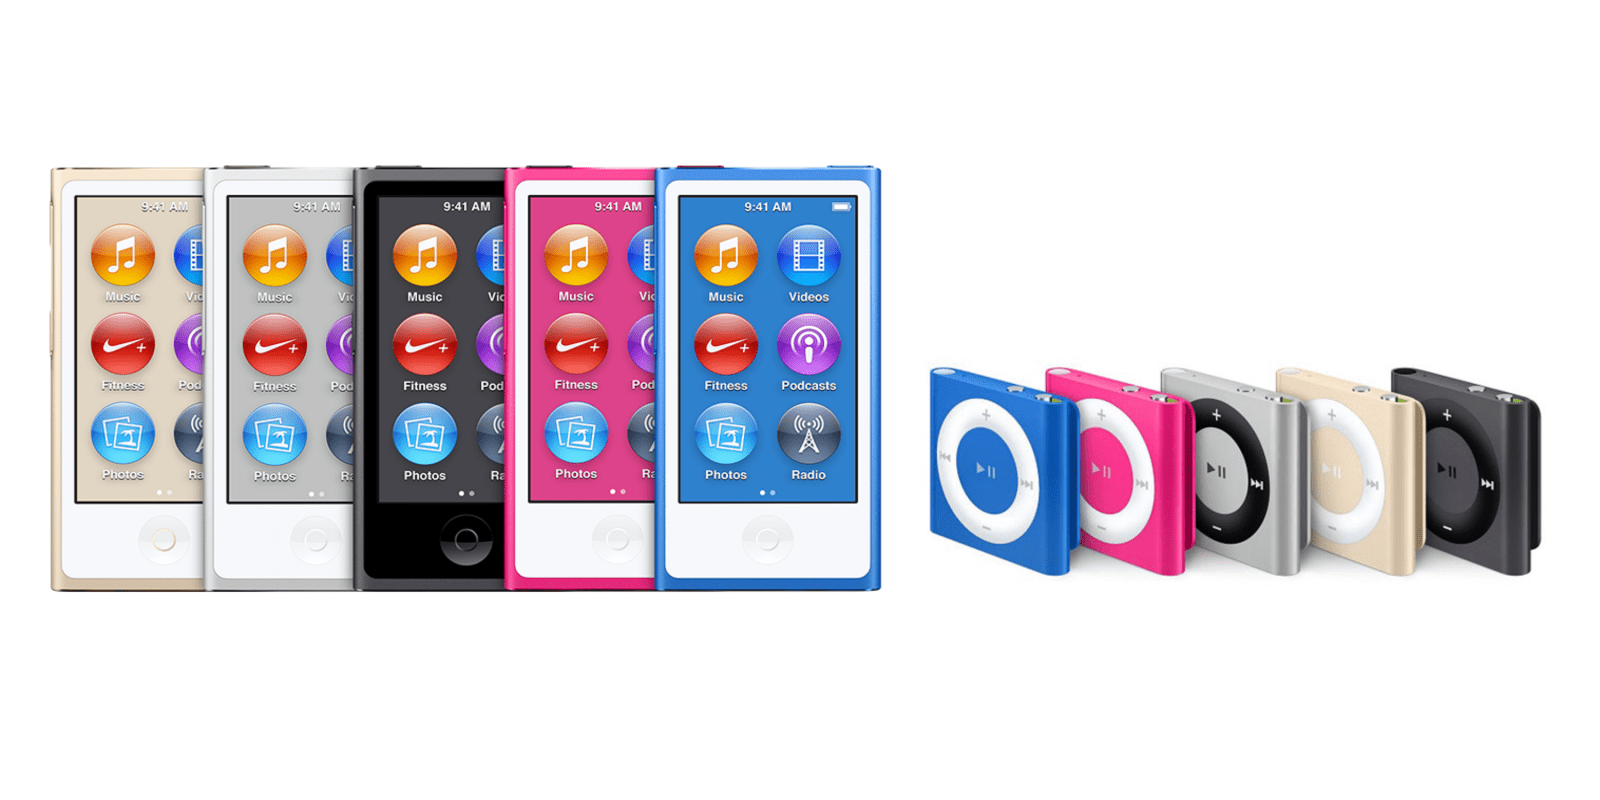 Apple discontinues iPod nano and shuffle (Update: Confirmed)